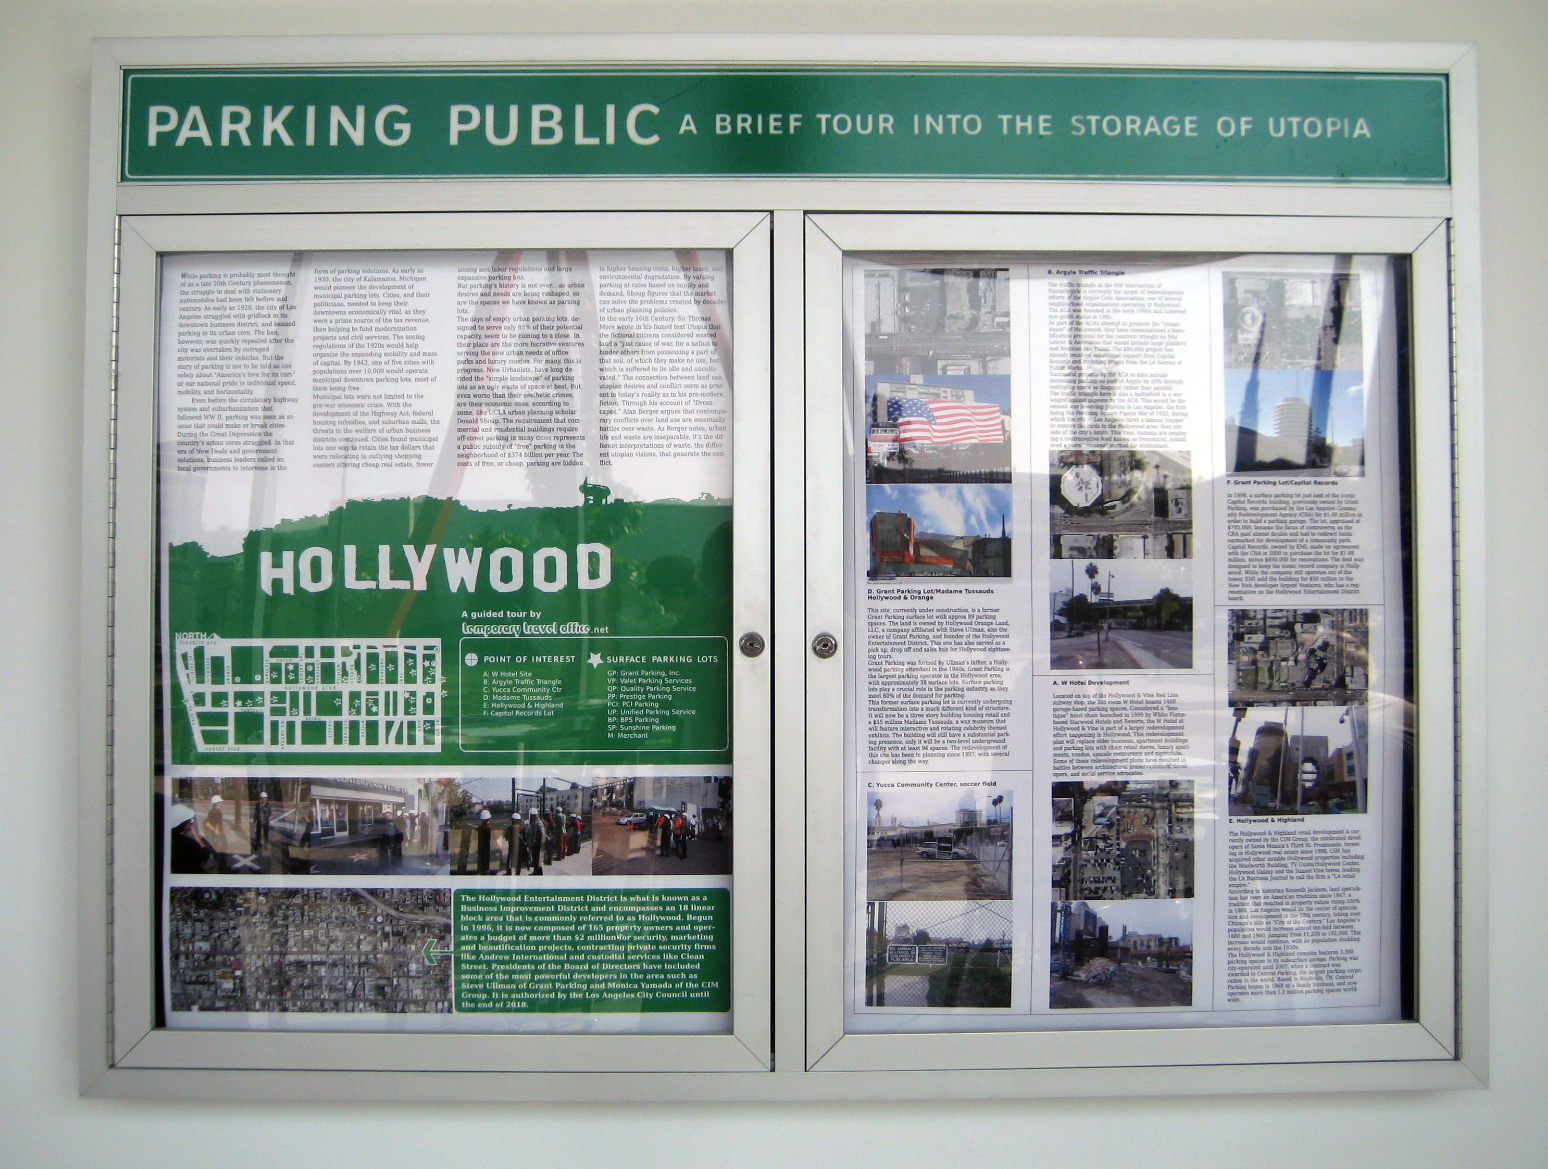 Temporary Travel Office,  Parking Public, A Brief Tour into the Storage of Utopia , 2005-ongoing; a research initiative that documents histories of public parking development as they relates to ideologies of utopian capitalism